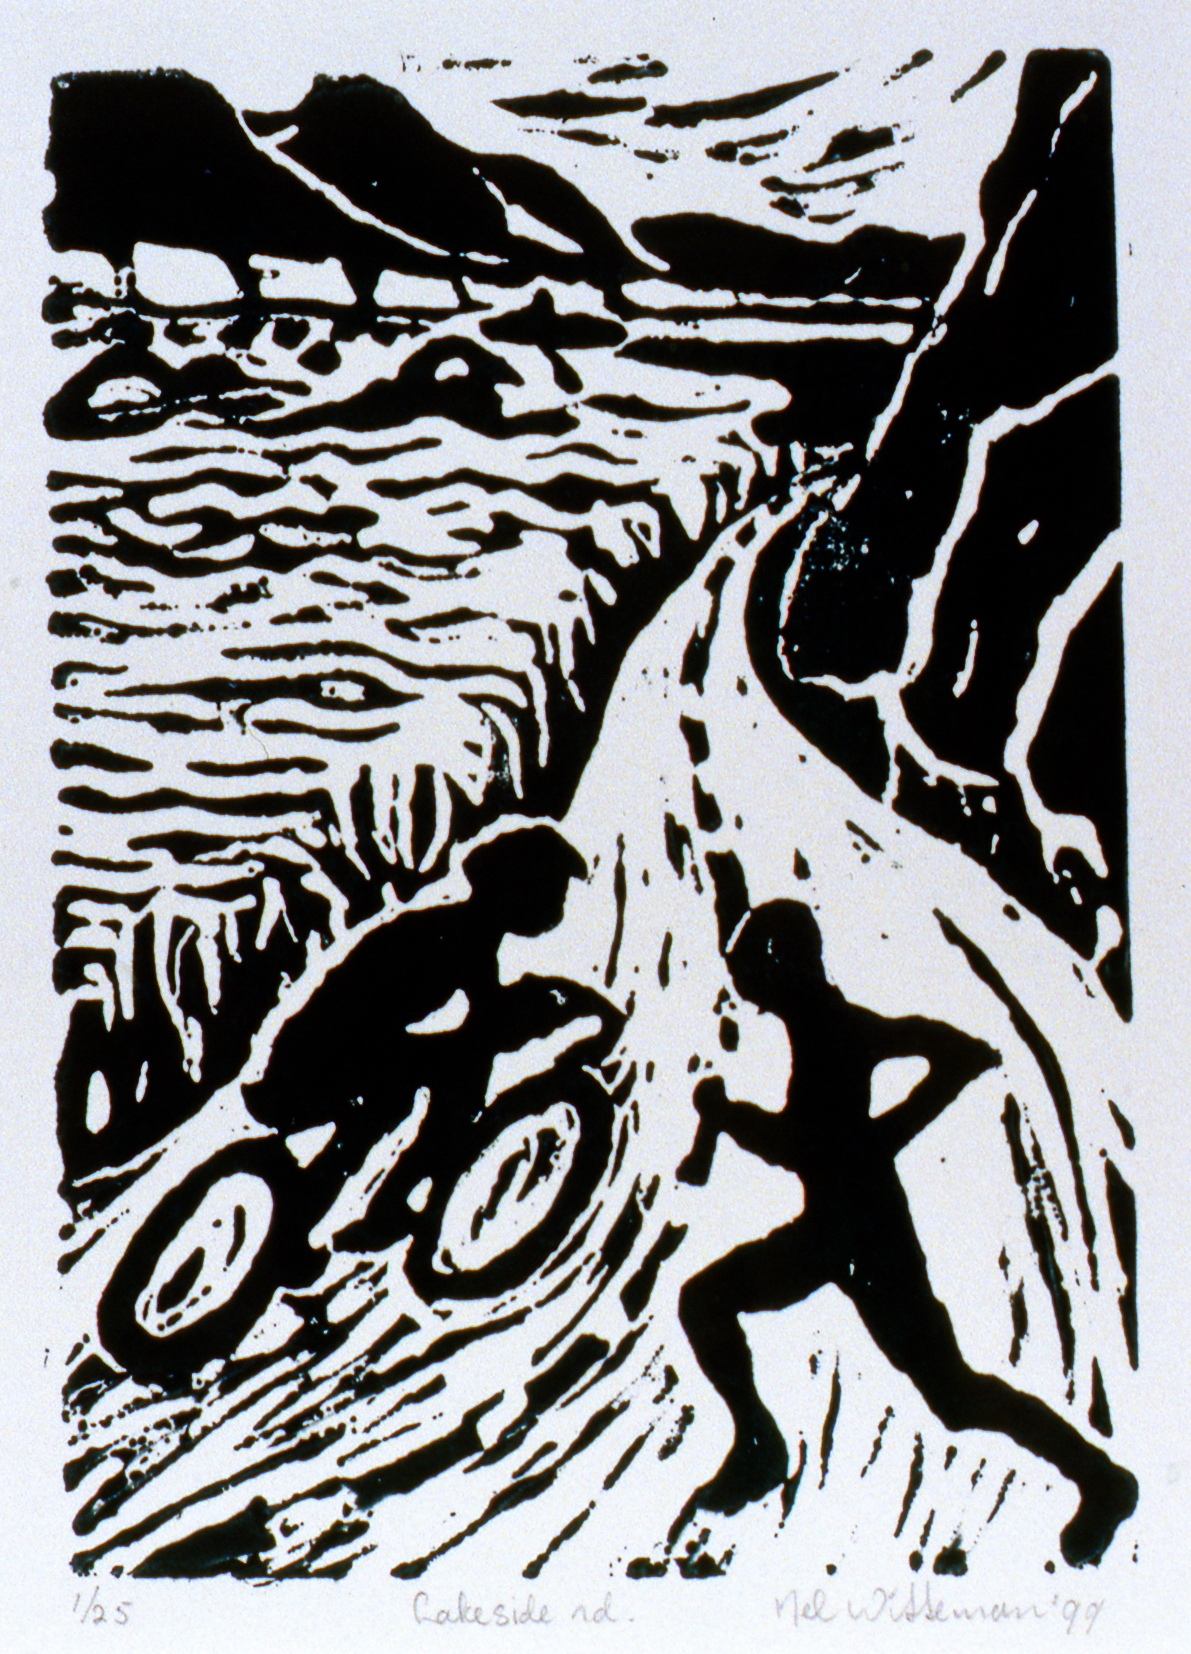 Lakeside Road , The Spirit of Ironman Linocut Prints, edition 1/25, 1999, Nel Witteman, linocut print, 17.7cm x 12.5 cm, 1999.02.09, gift of the artist